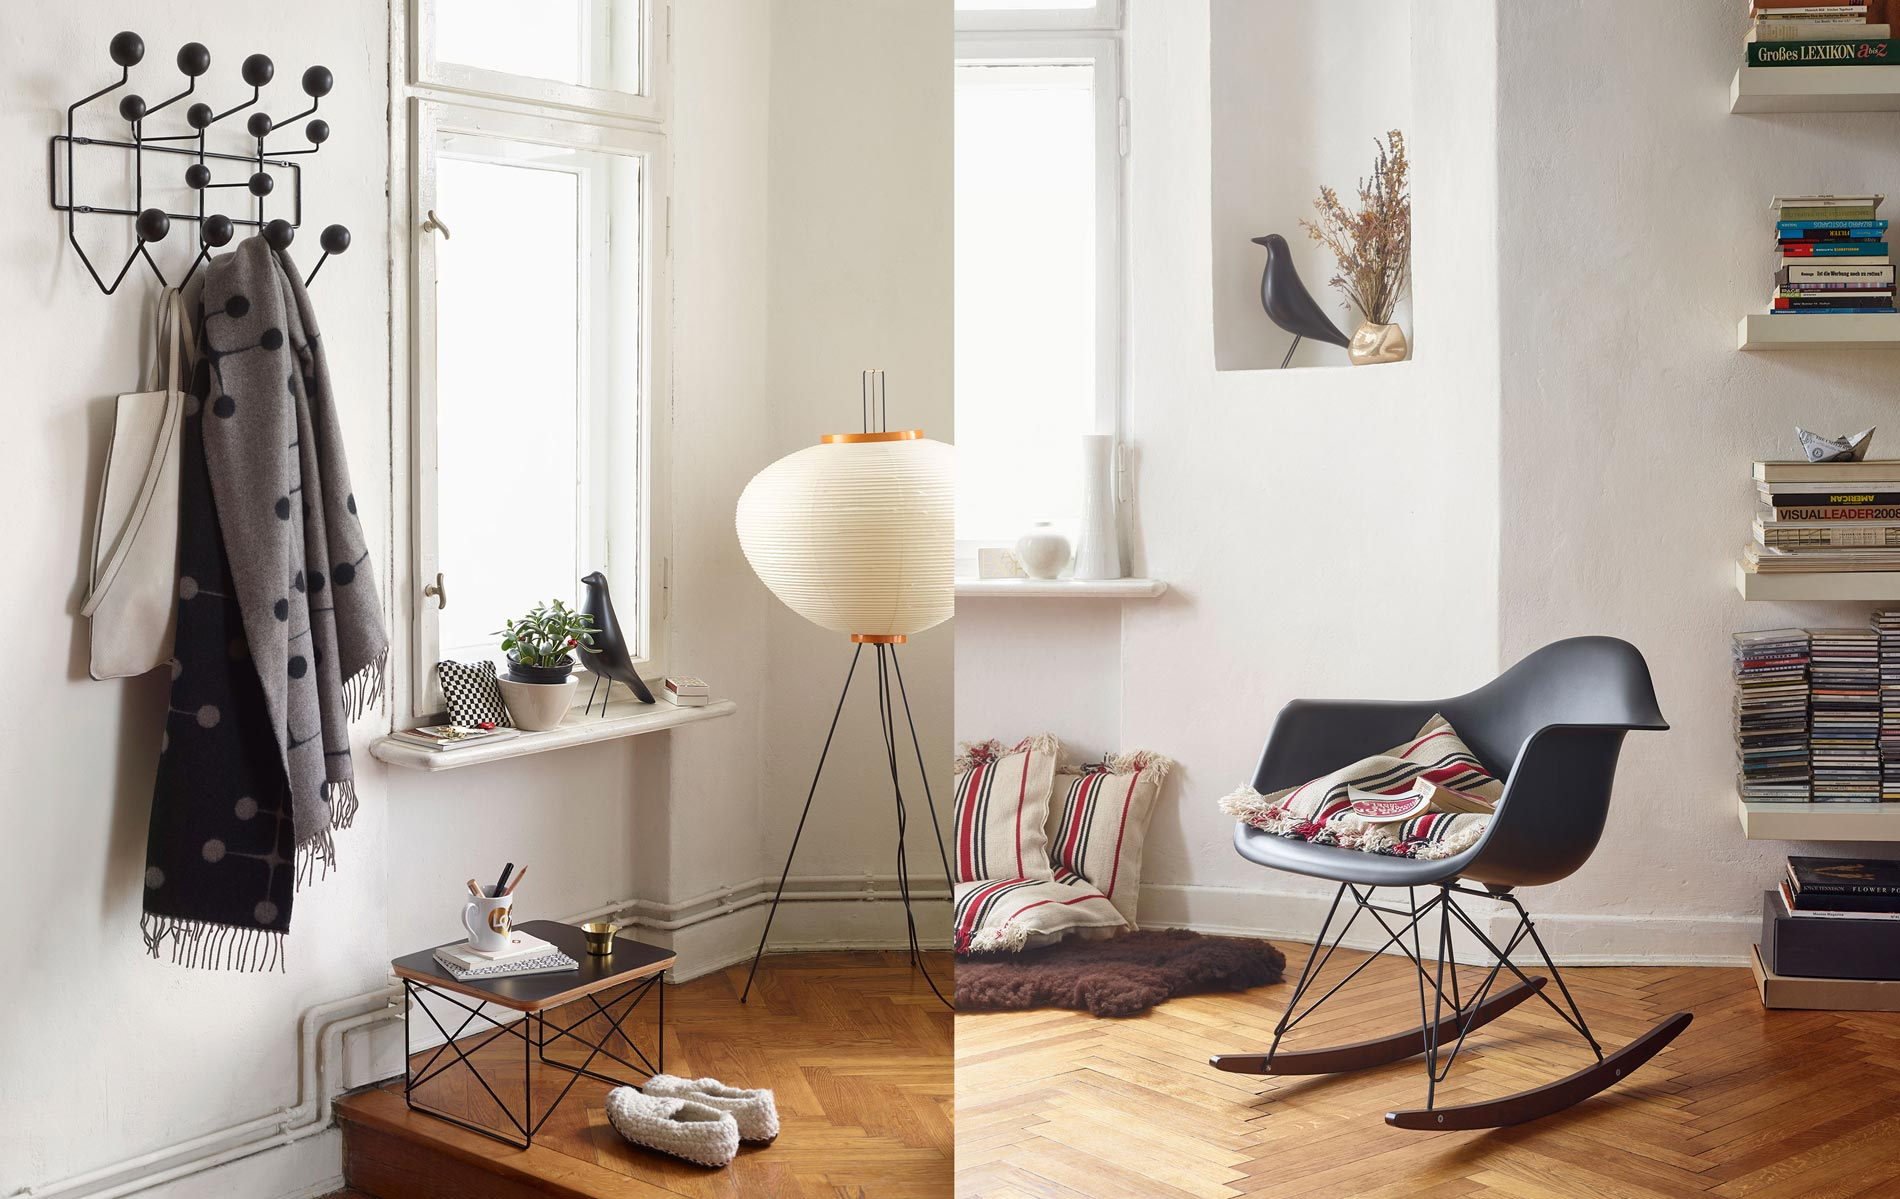 Hang it all, Eames Bird online kaufen bei LIVINGforme.de